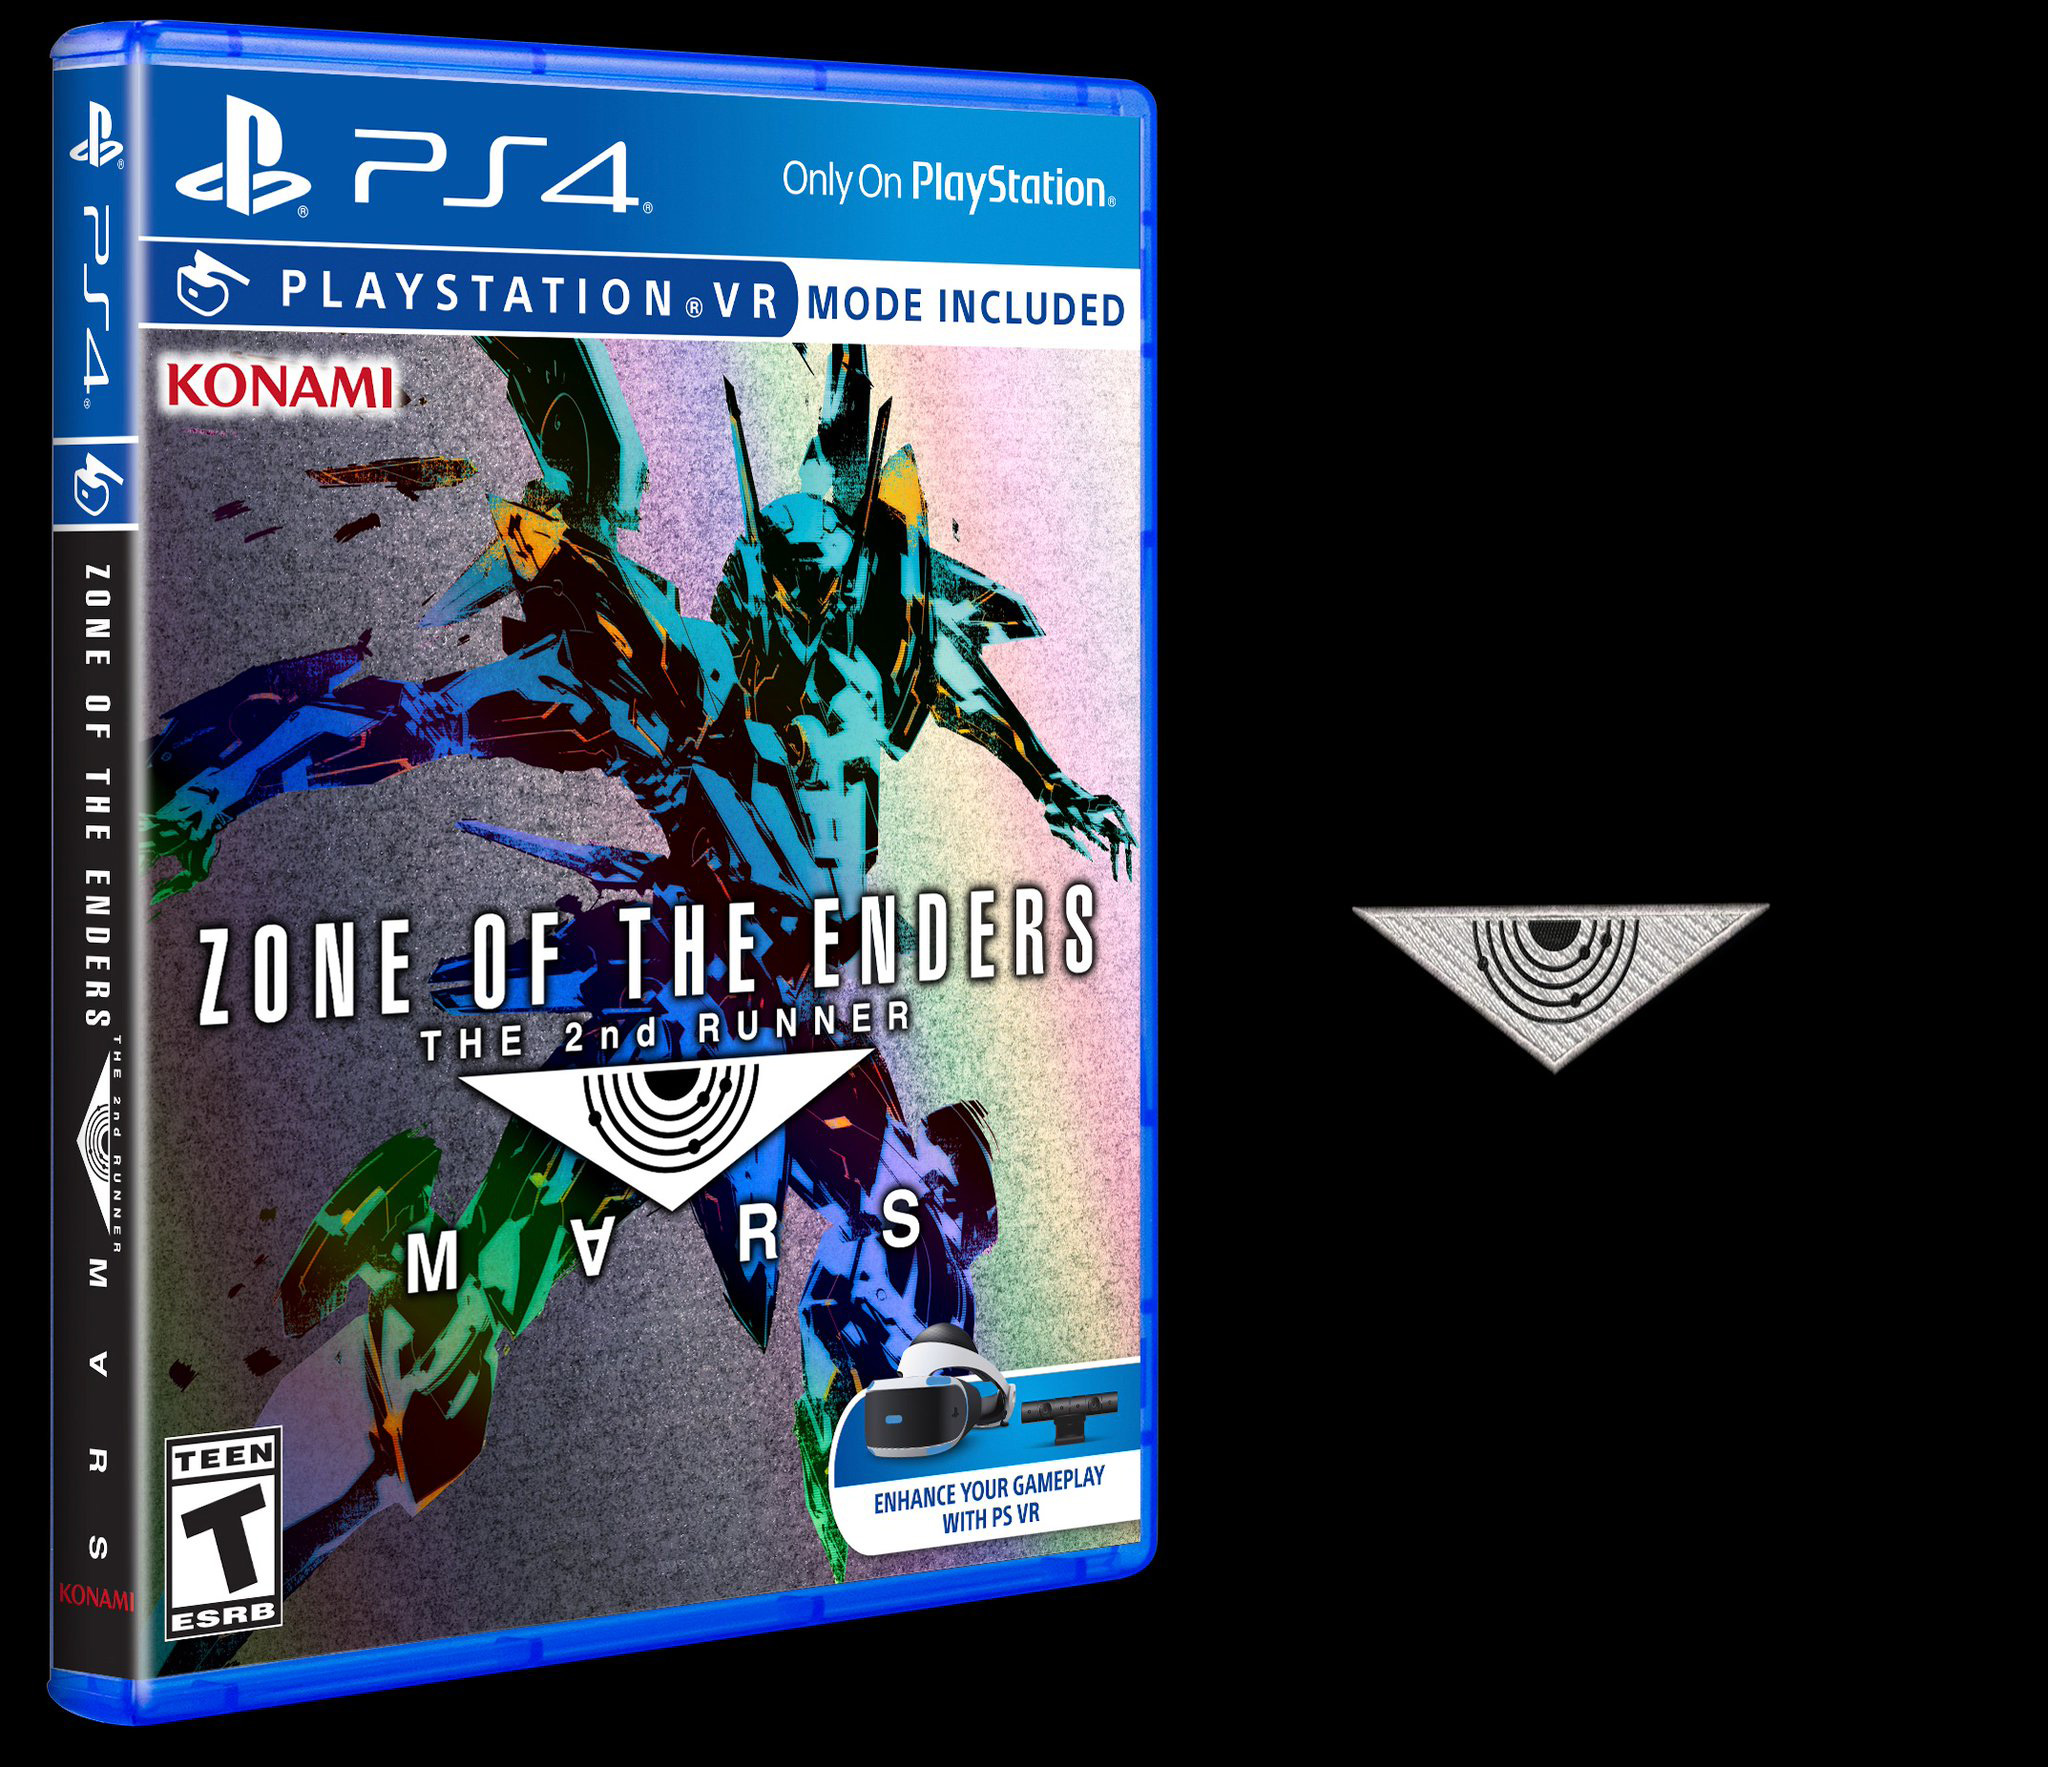 Zone Of The Enders 2nd Runner Mars Will Release In September Switch 3 Launch Edition Bonus English Us Games And Canada Physical Feature A Holographic Cover Zoe Triangle Embroidered Patch For Limited Time